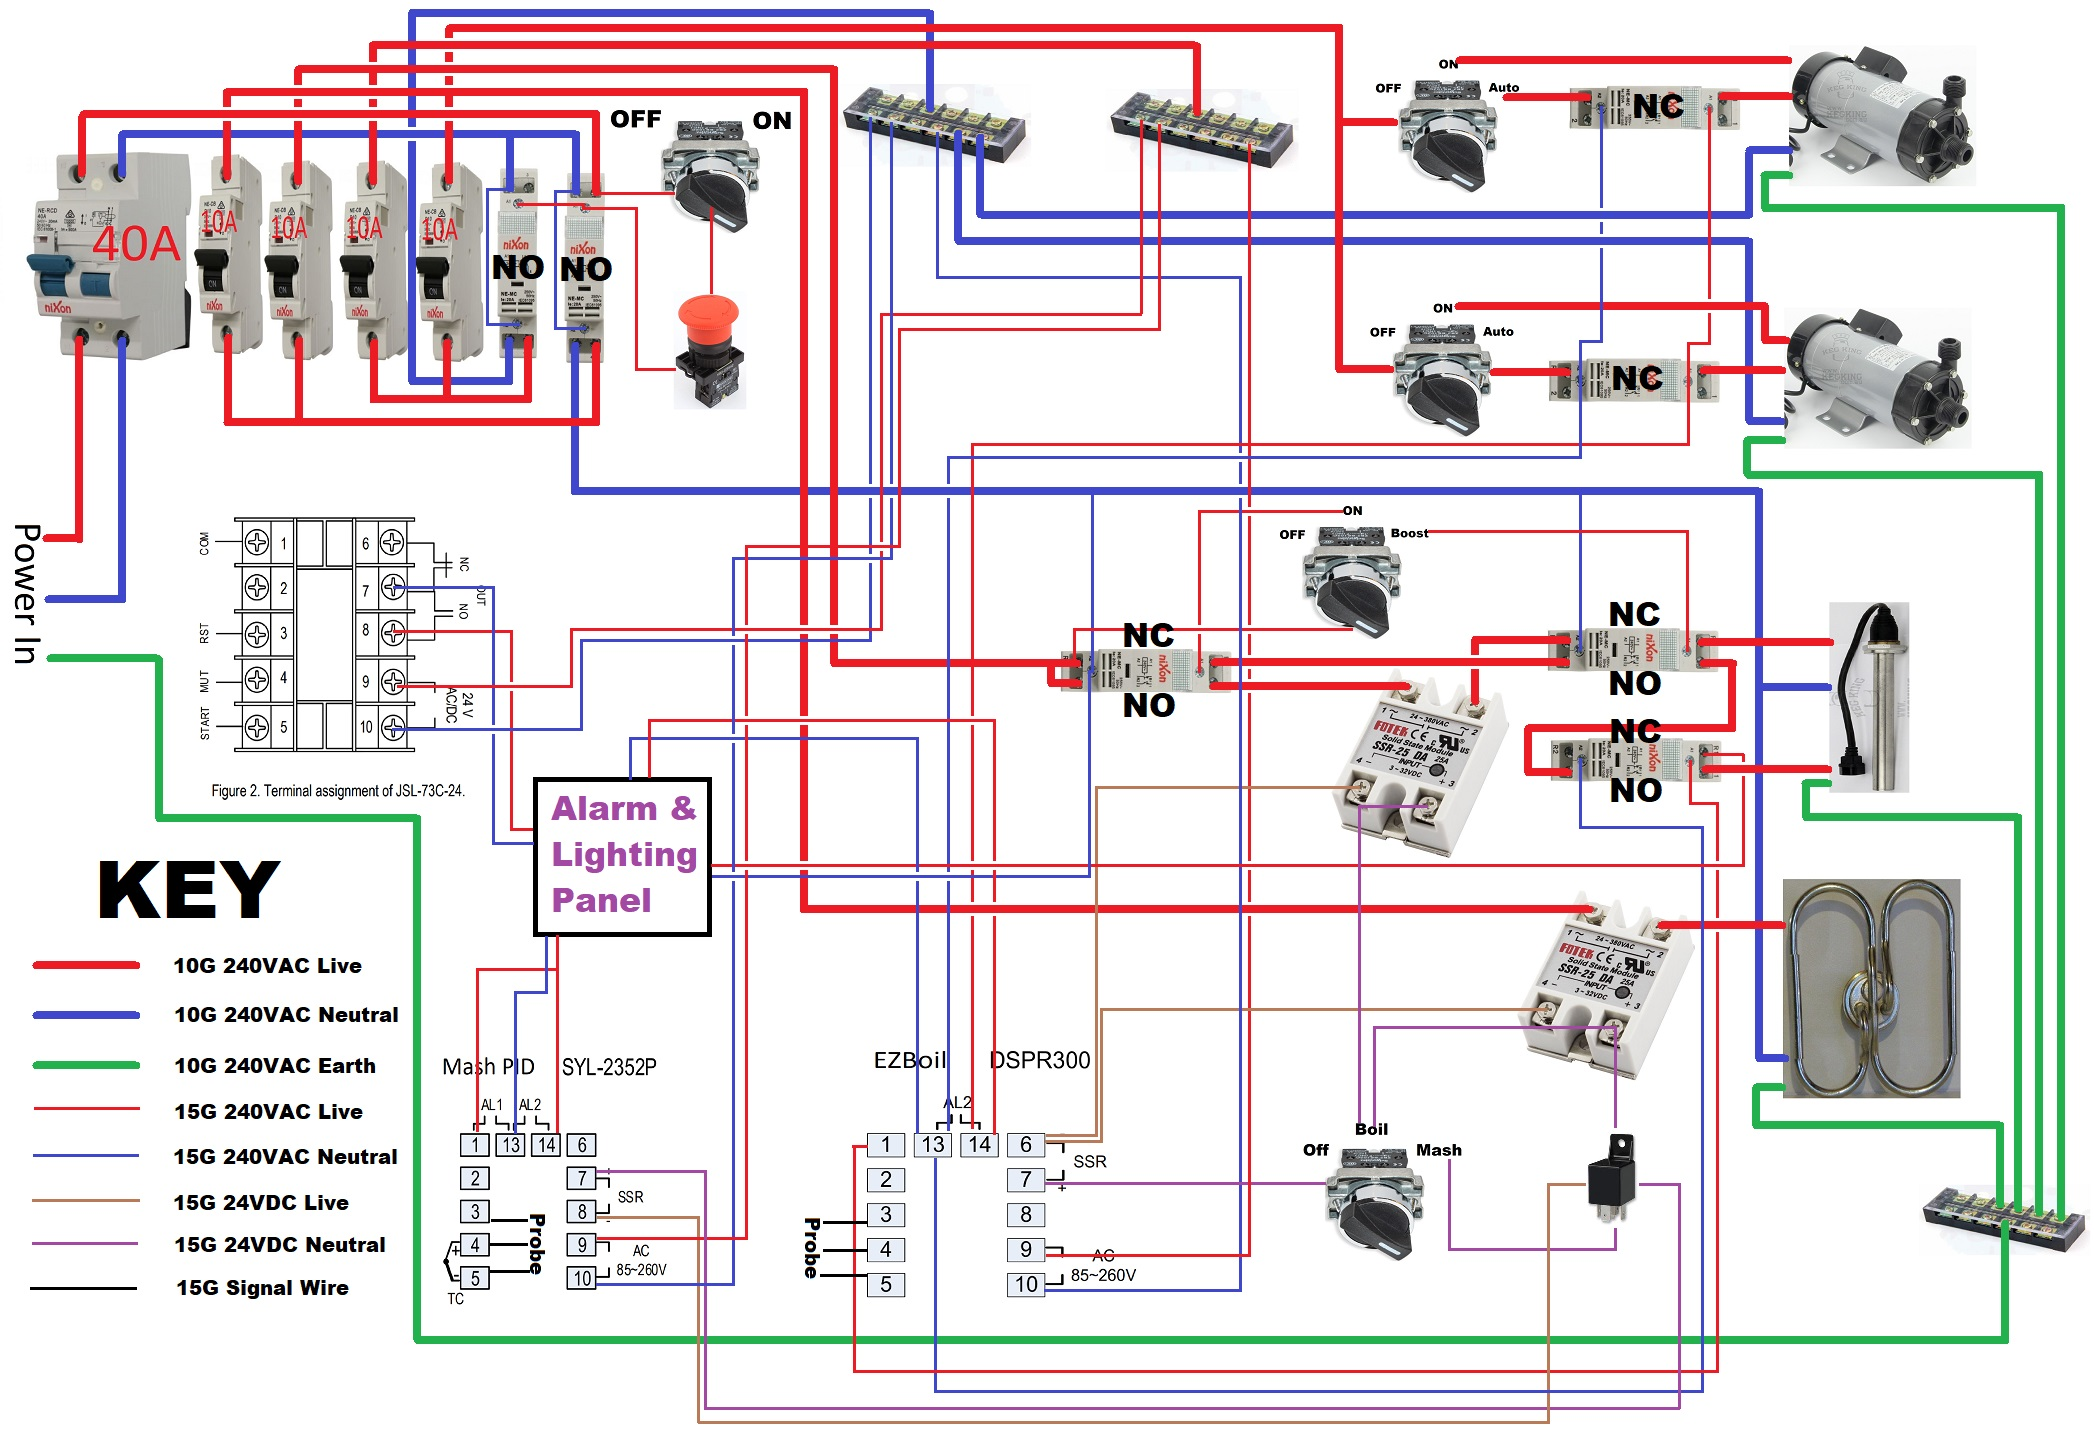 control panel wiring diagram ft 3063  fo4 control panel wiring diagram control panel wiring diagram ft 3063  fo4 control panel wiring diagram